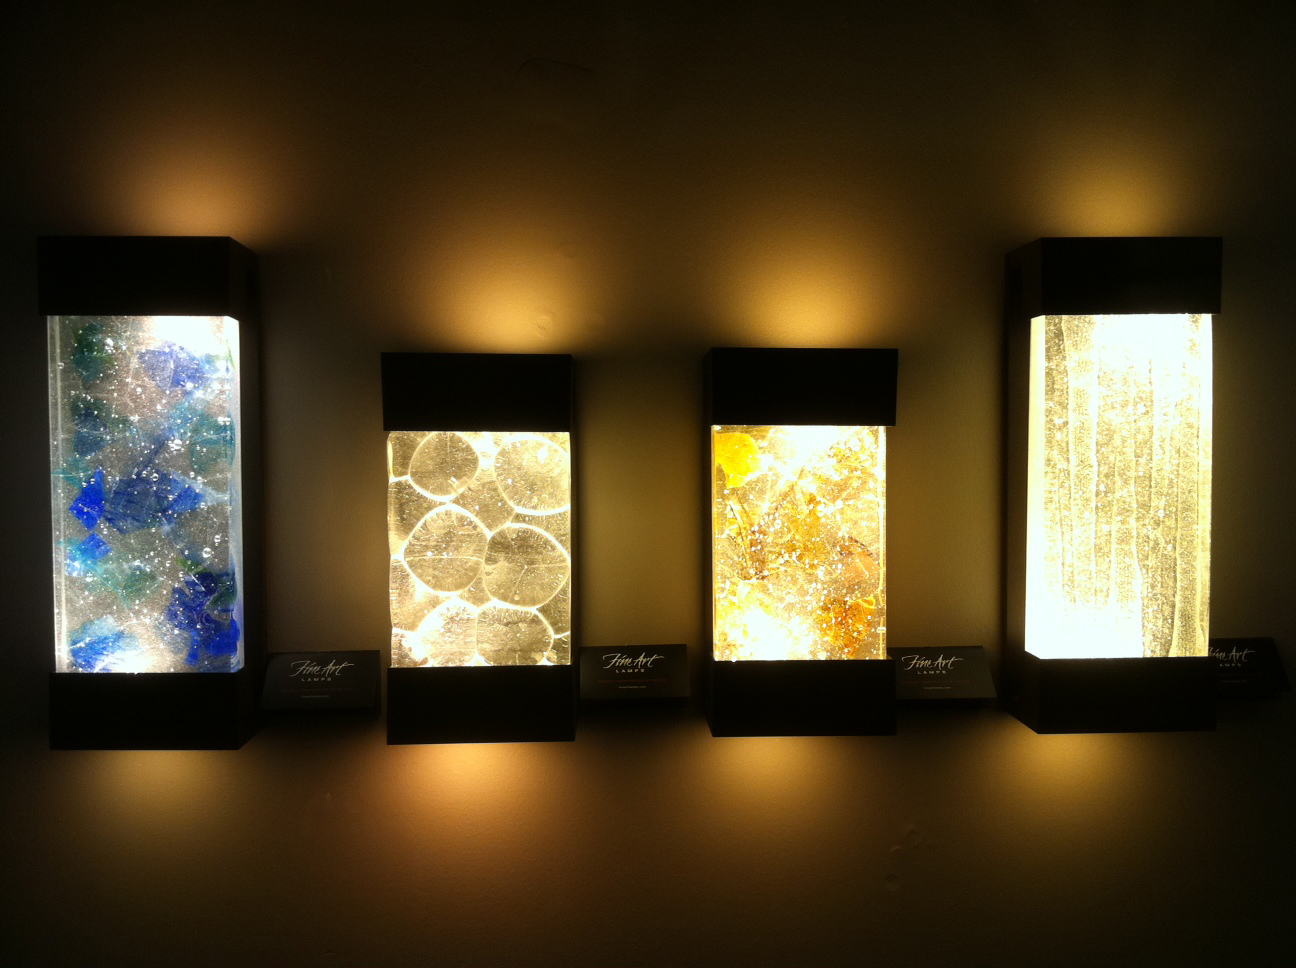 Artistic Light Fixtures Wall Art With Led Lights The Art Of The Future Warisan